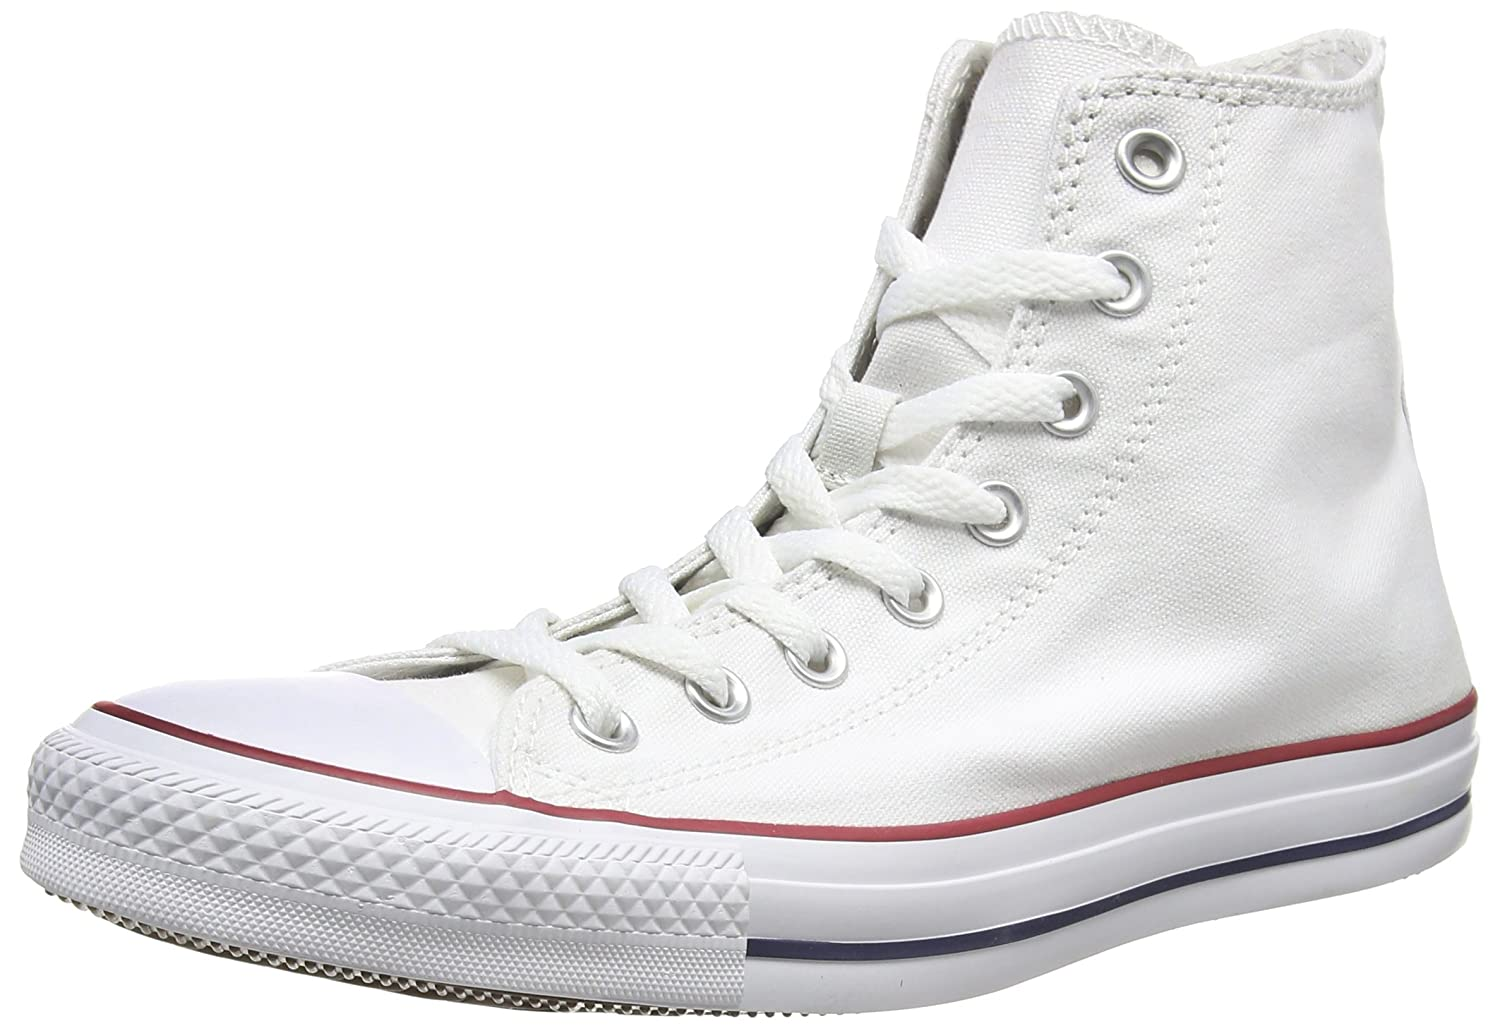 Converse Chuck Taylor All Star Core Hi B006DU393Q 7 D(M) US|Optical White